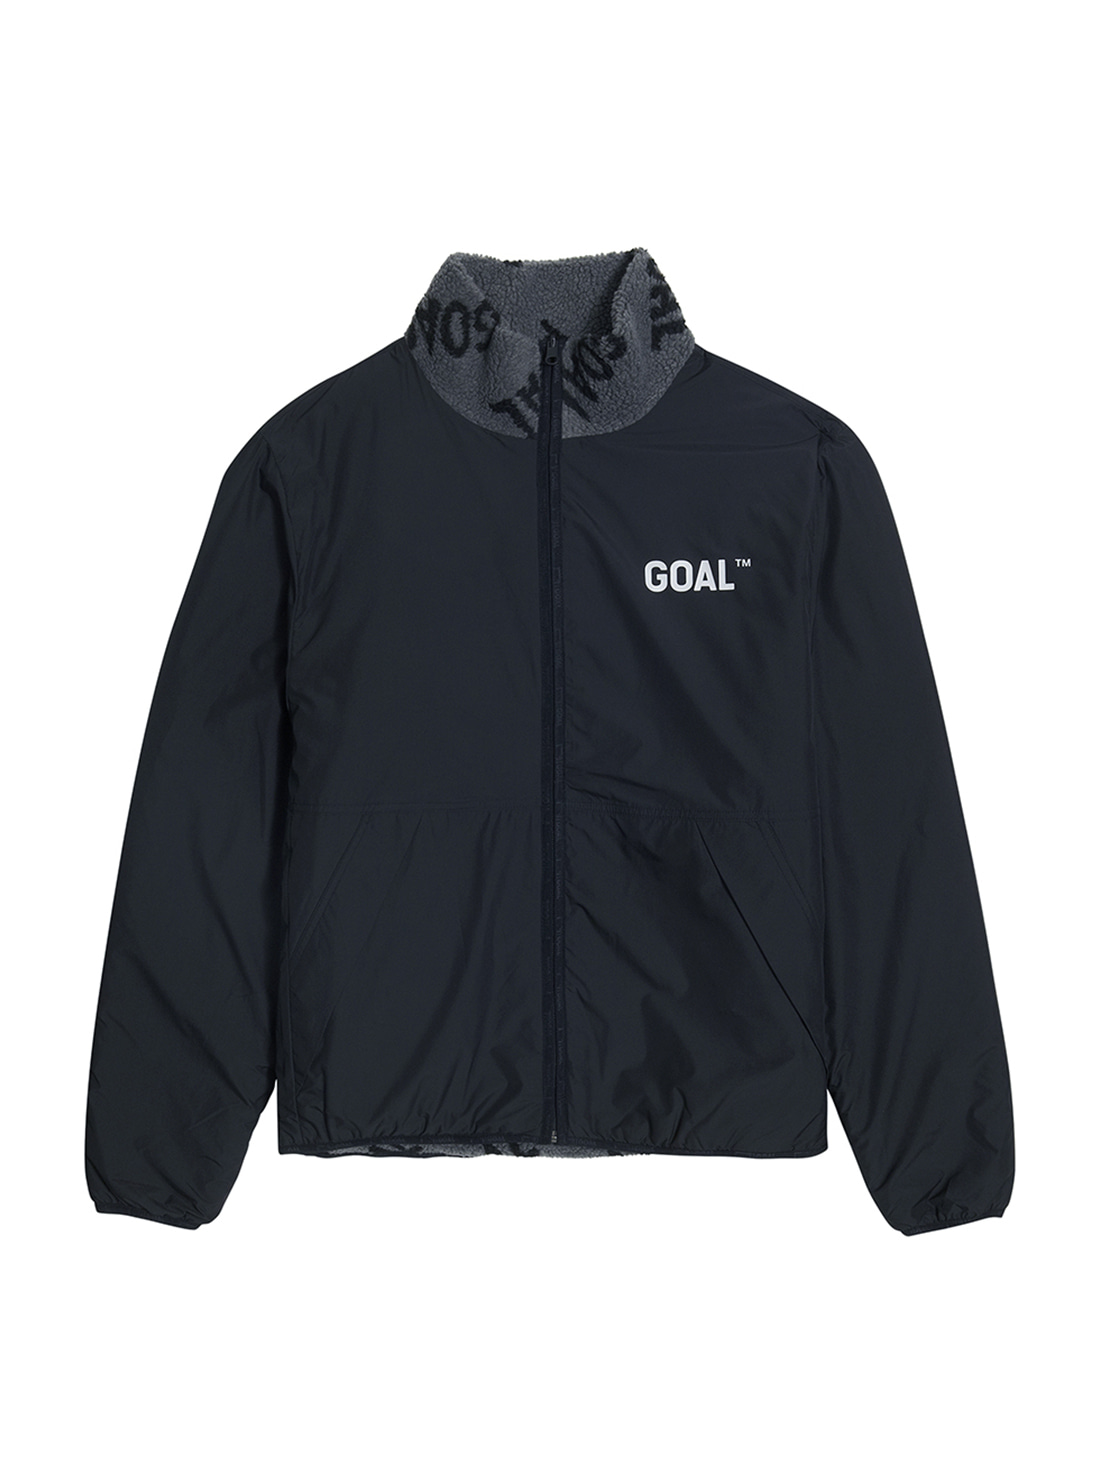 GOALSTUDIO REVERSIBLE FLEECE JACKET - GREY/BLACK